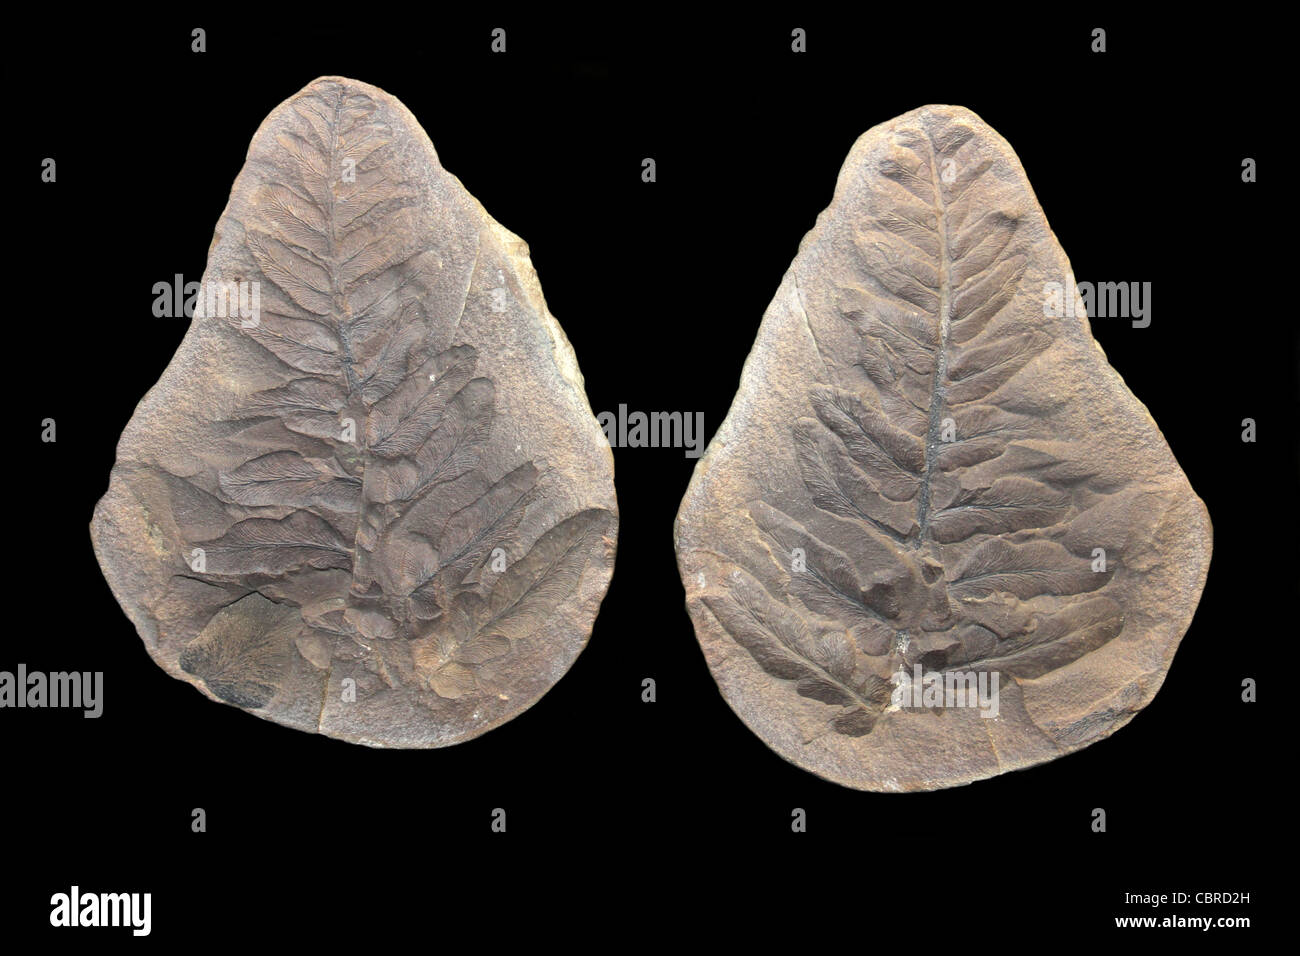 Fossil Leaf Neuropteris sp. Upper Carboniferous Period Dudley, Northumberland Stock Photo